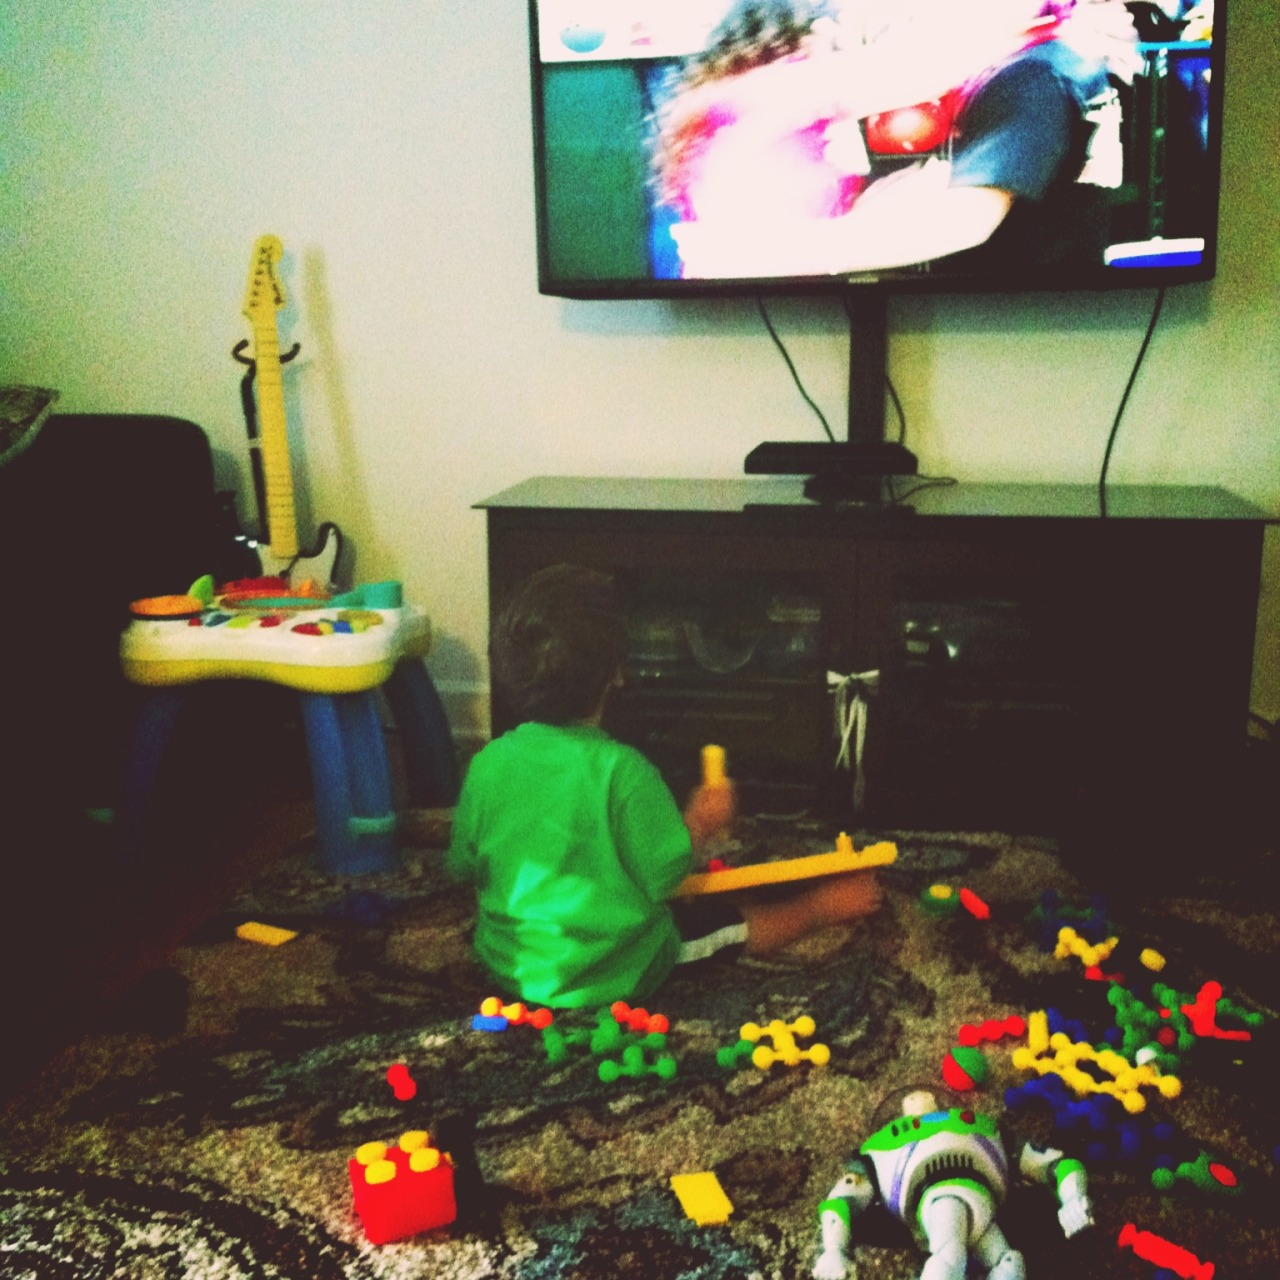 Playing with blocks and watching his Fav Disney channel. – View on Path.